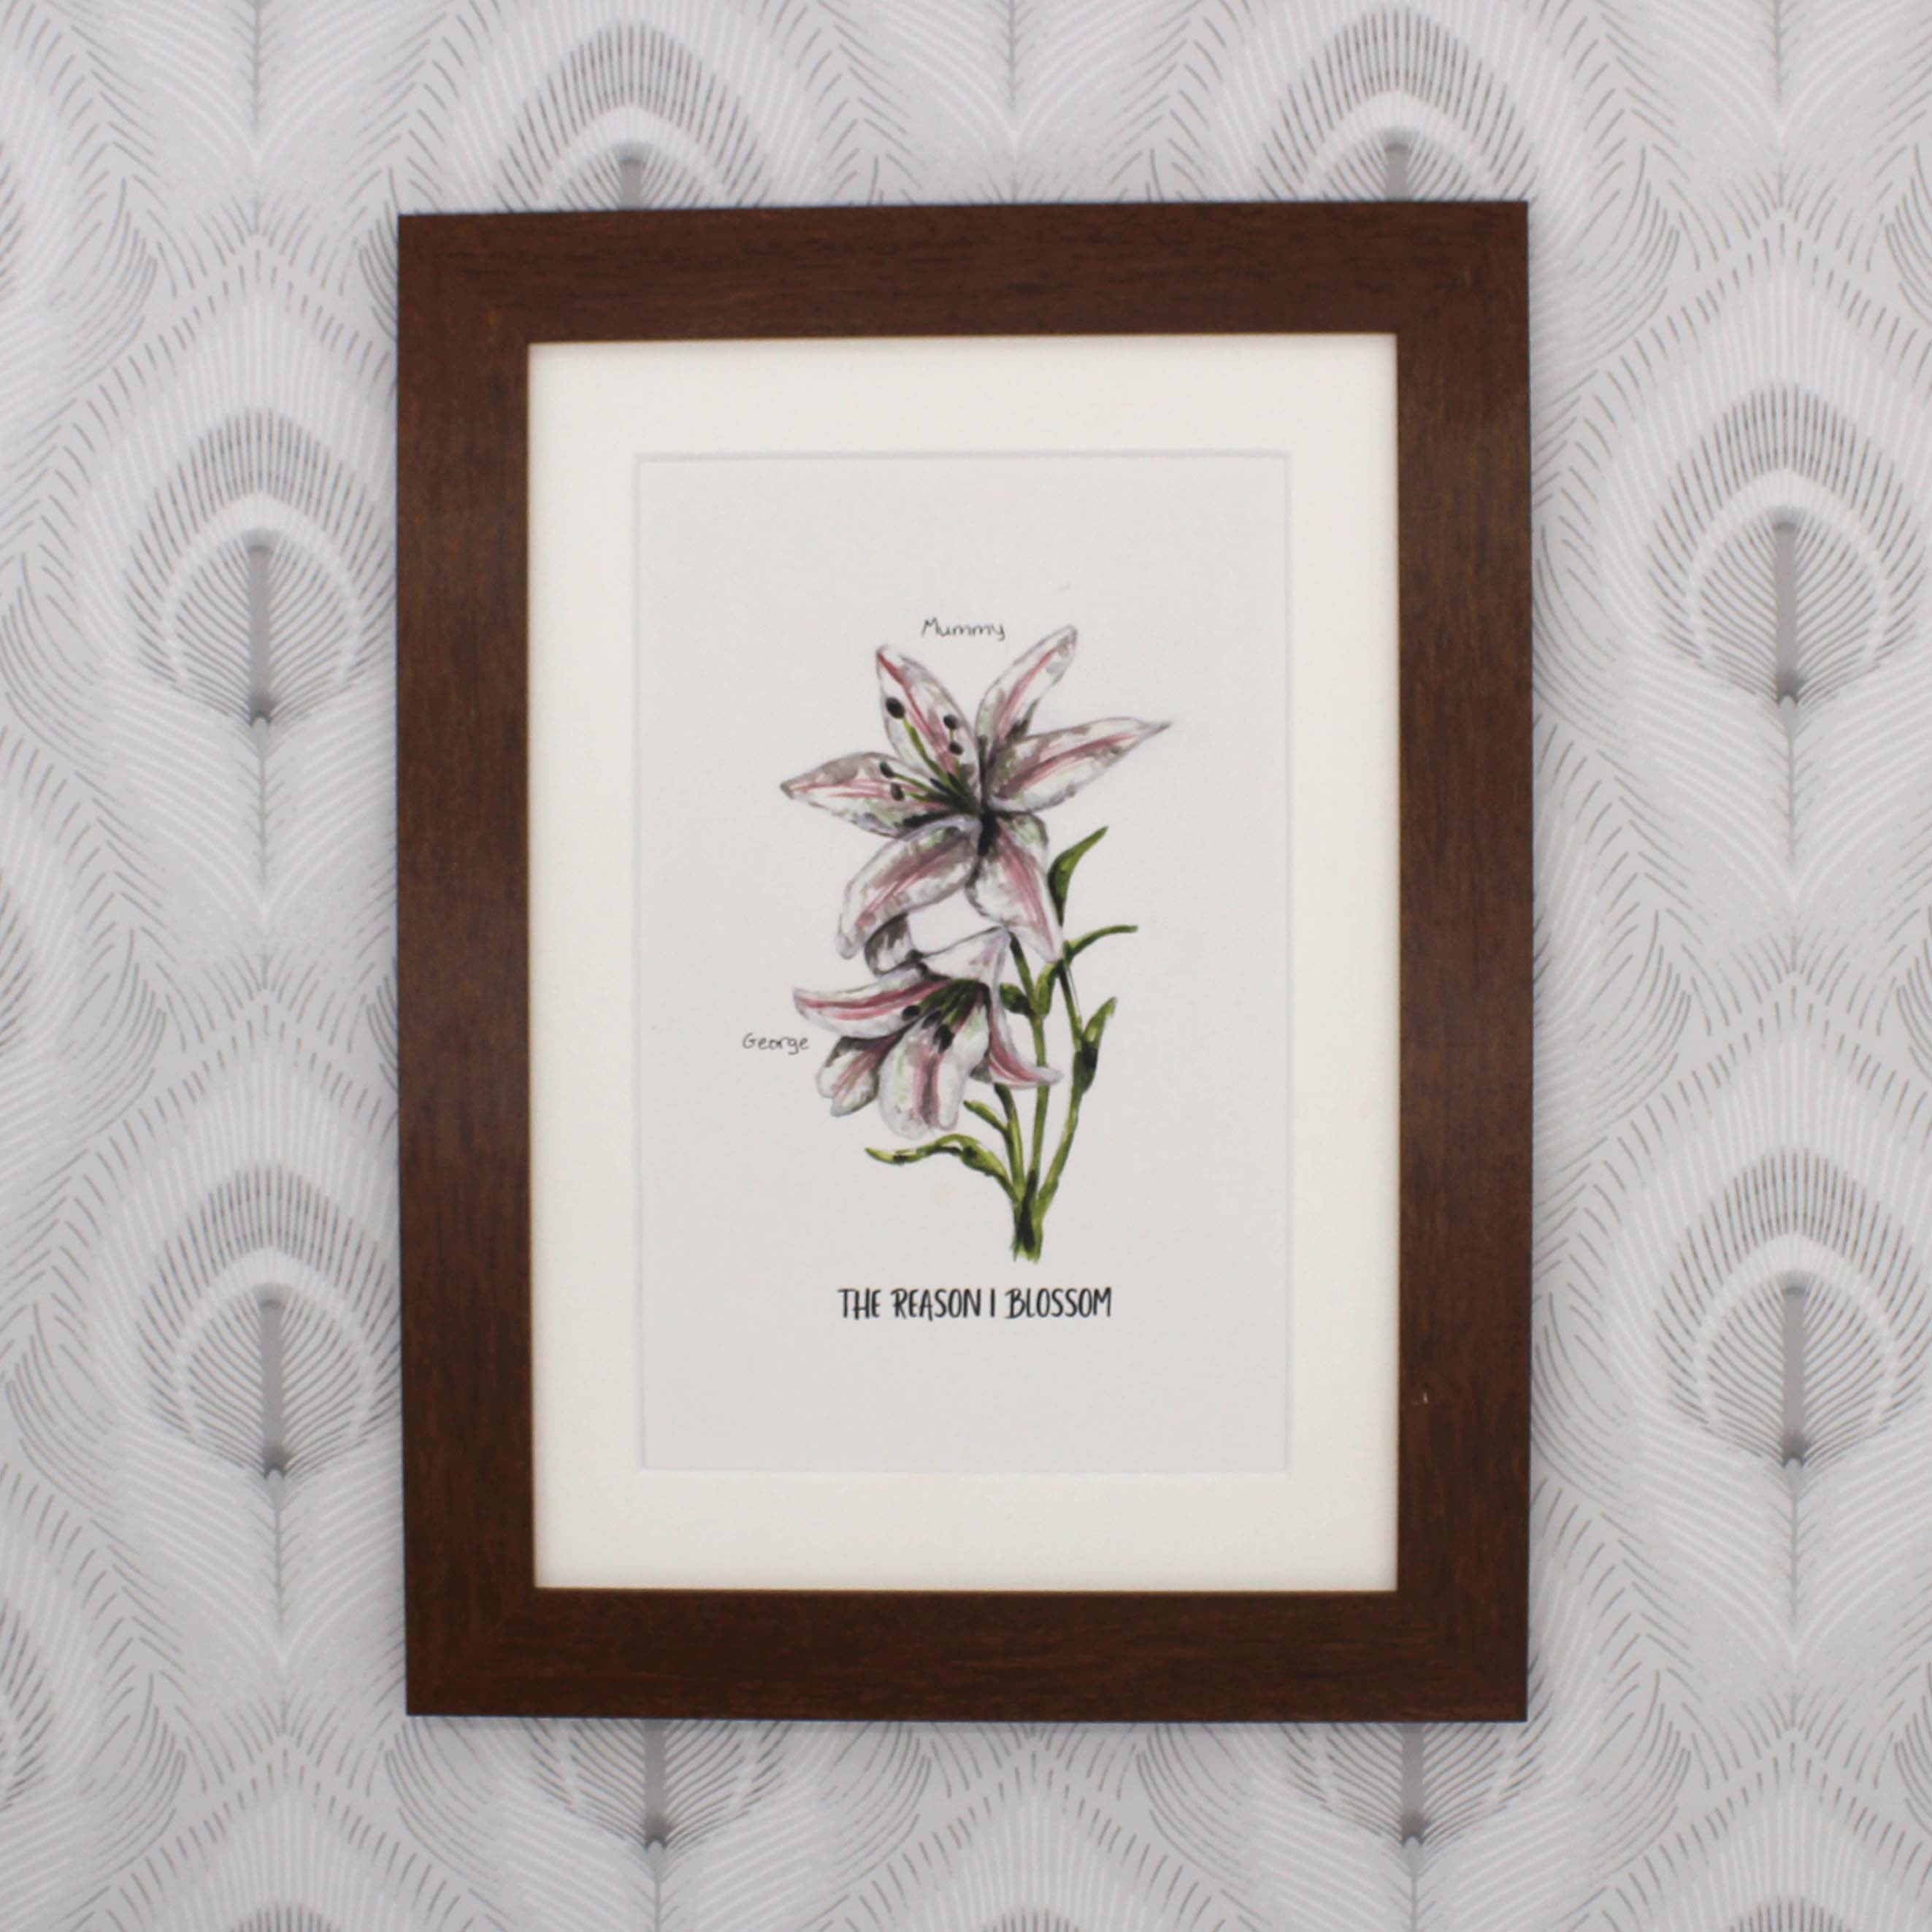 Personalised hand painted Lilies flower family print